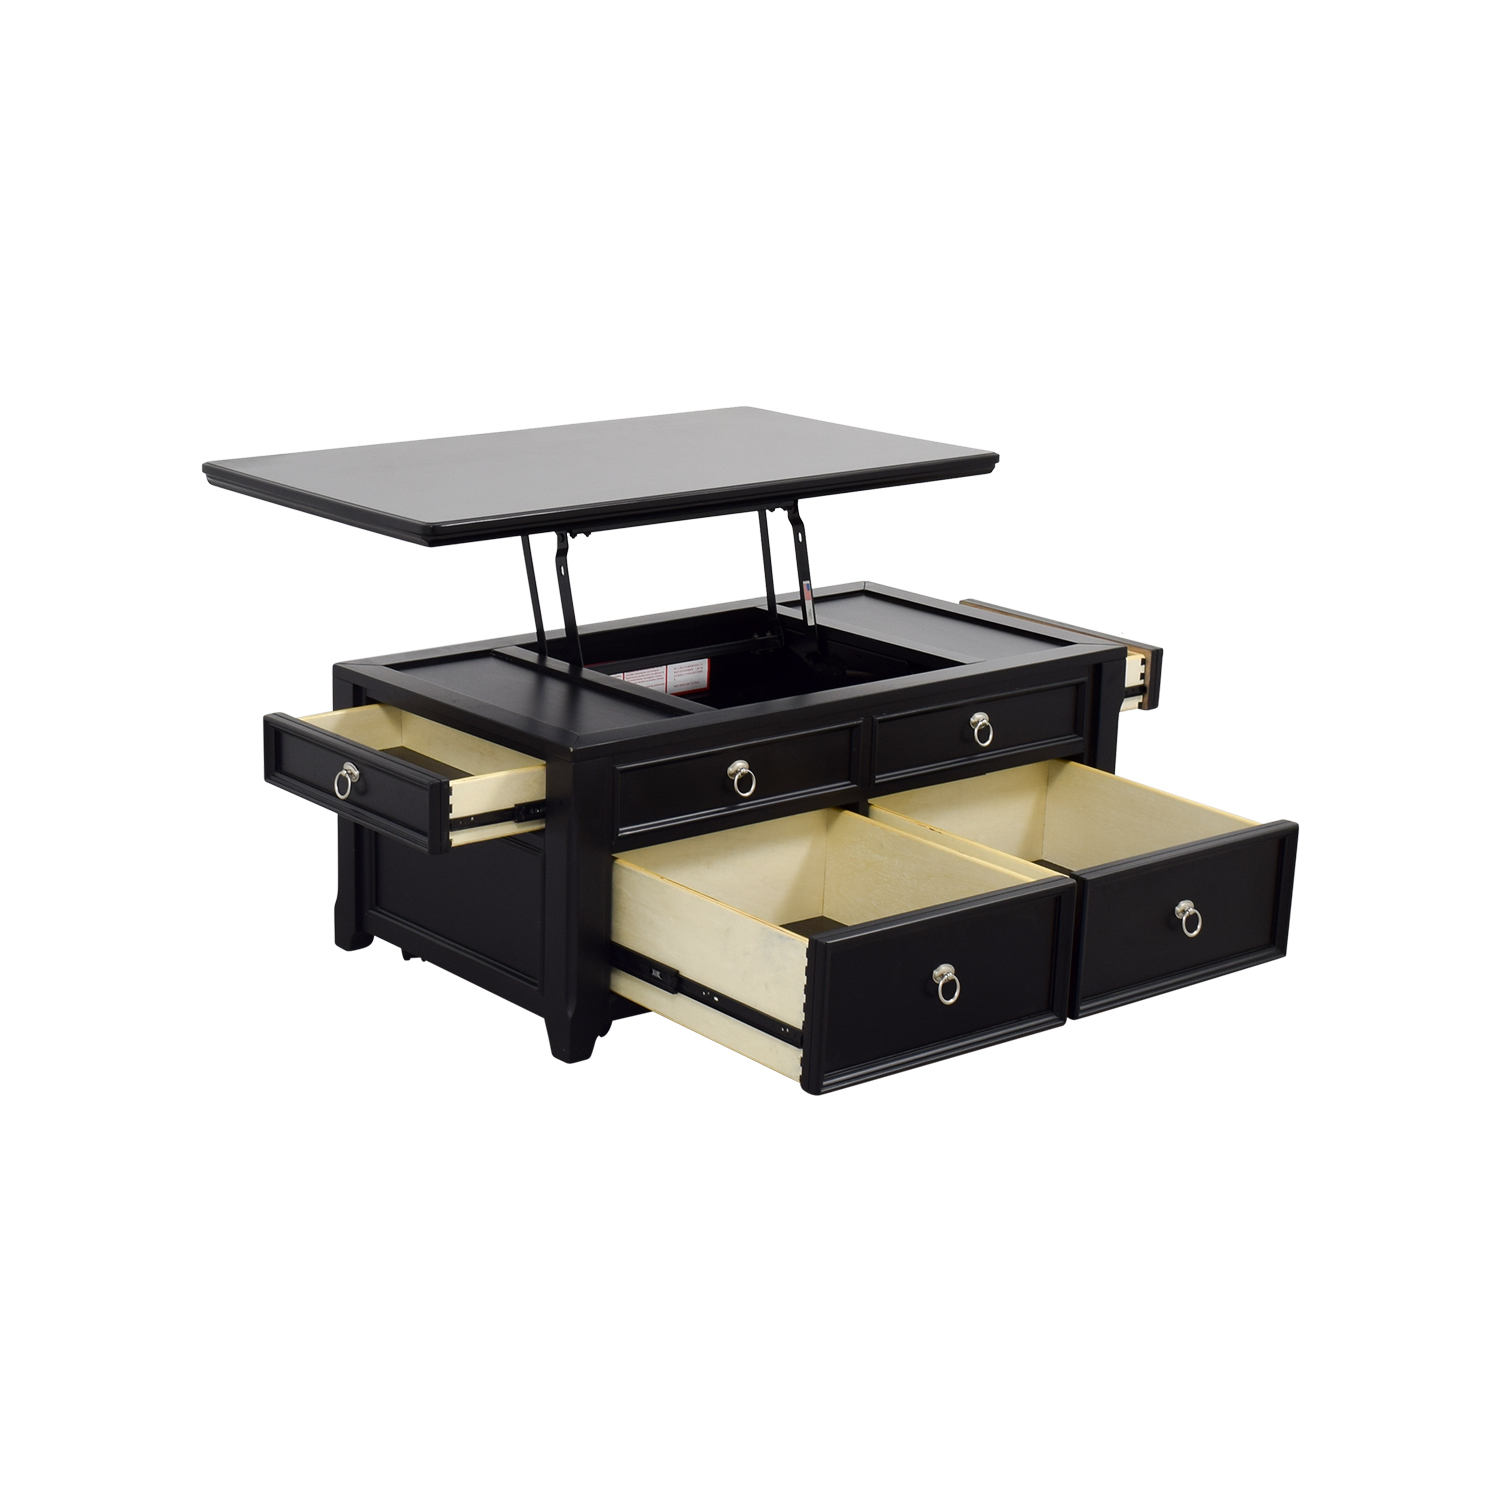 Ashley Furniture Ashley Furniture Black Lift-Top